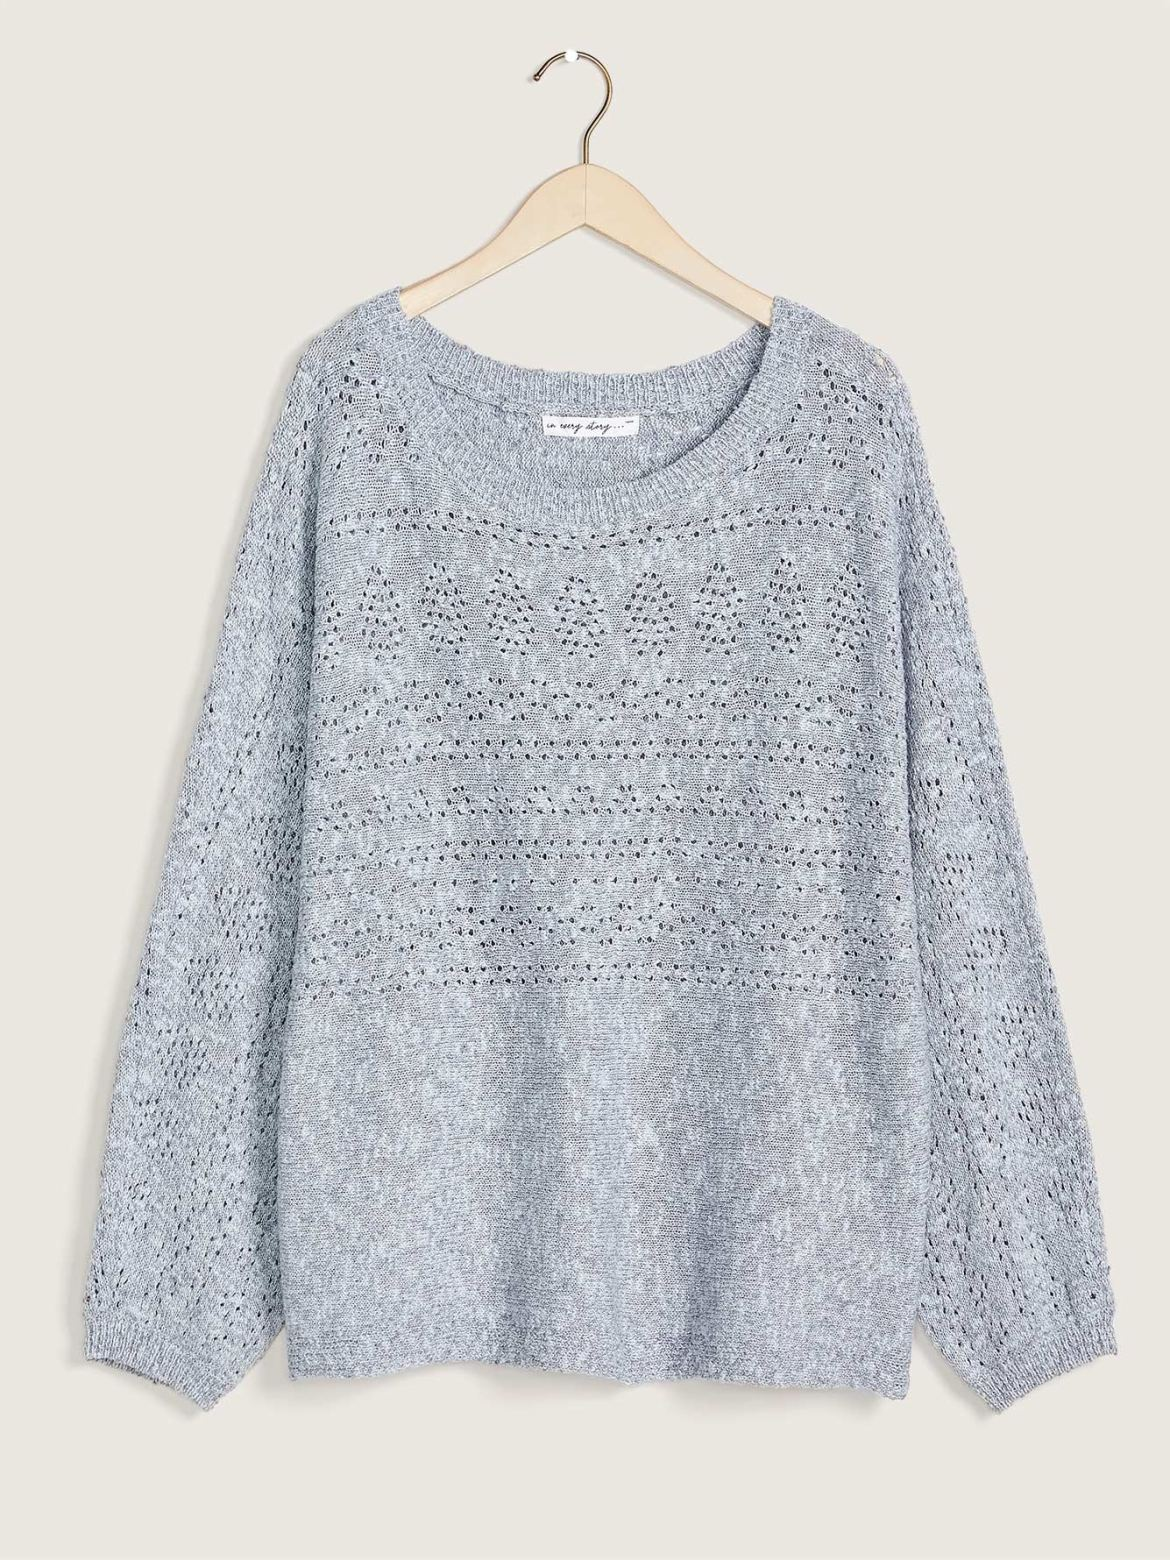 Pointelle Dolman Sleeve Sweater - In Every Story